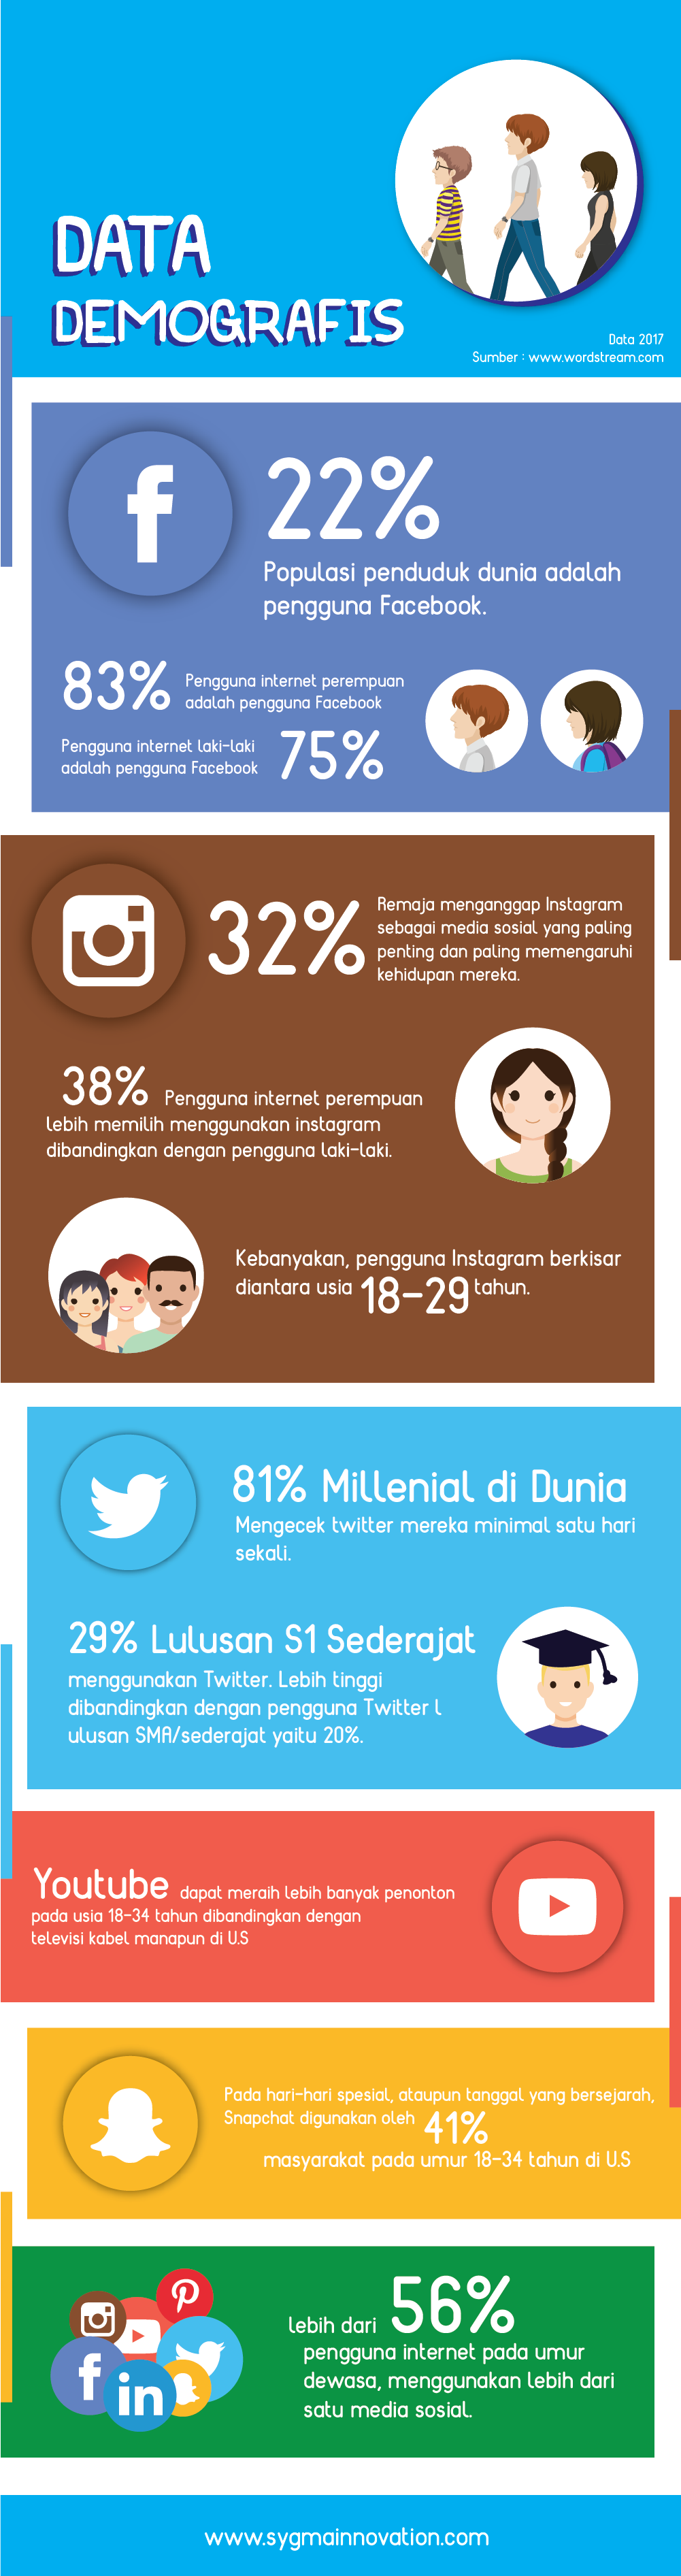 Infografis Data Demografis Pengguna Media Sosial